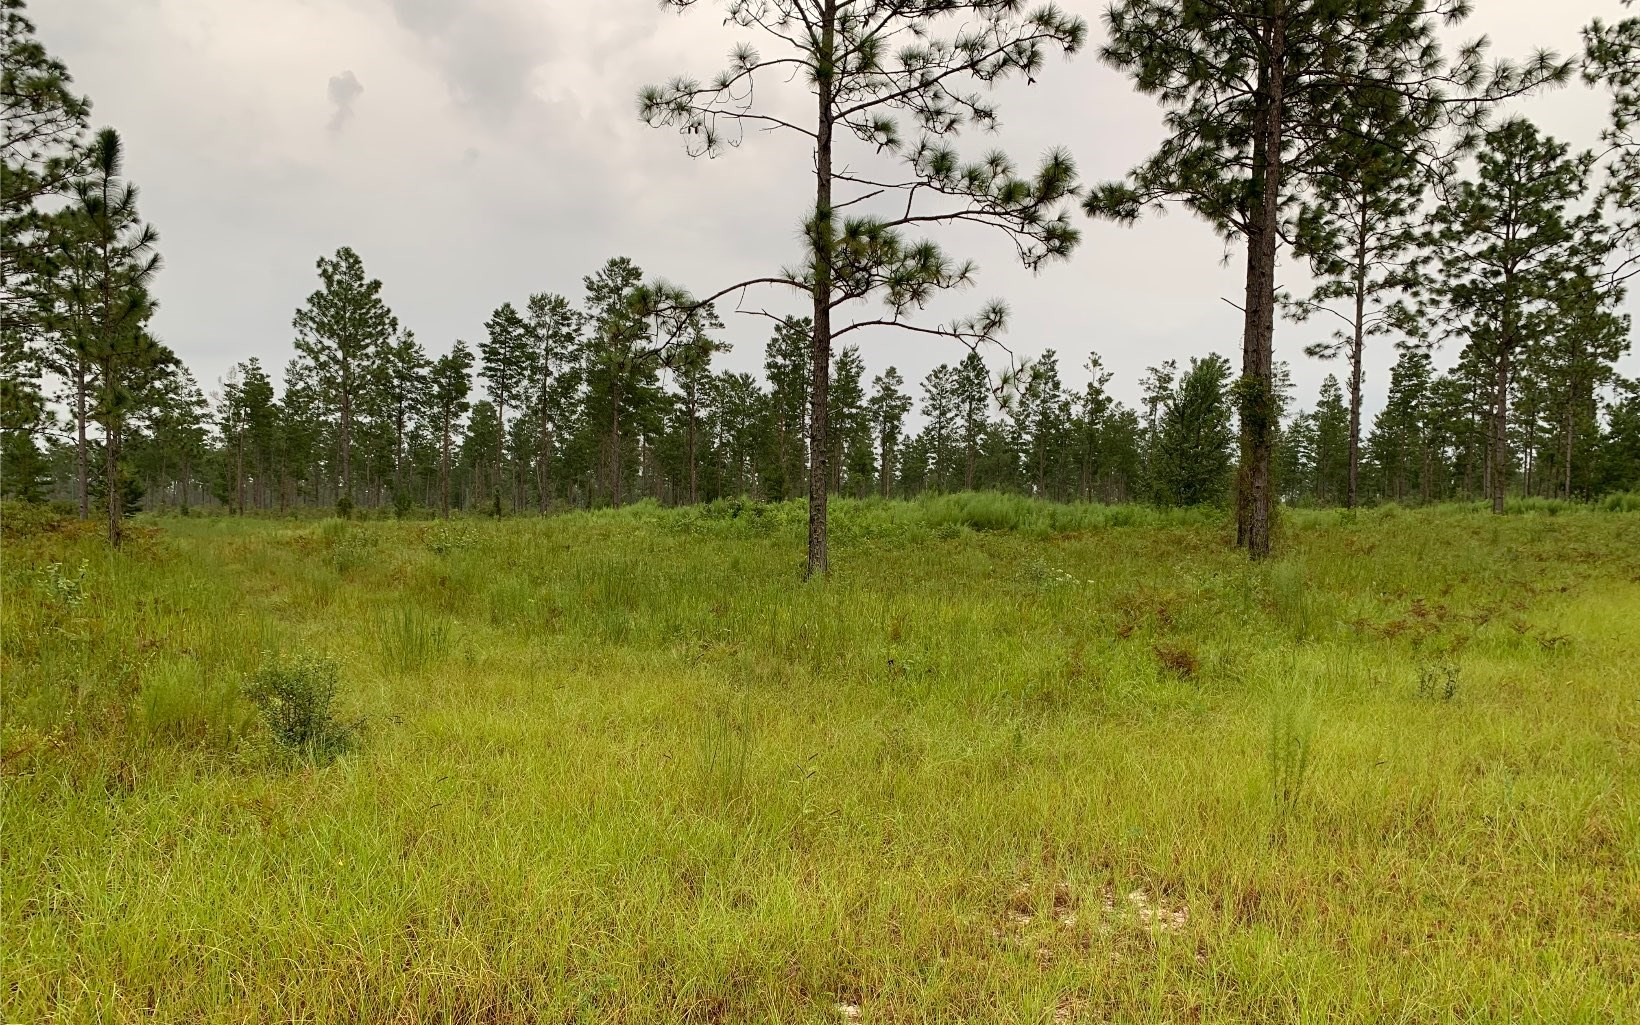 40 acres in Lee Florida on a paved road.